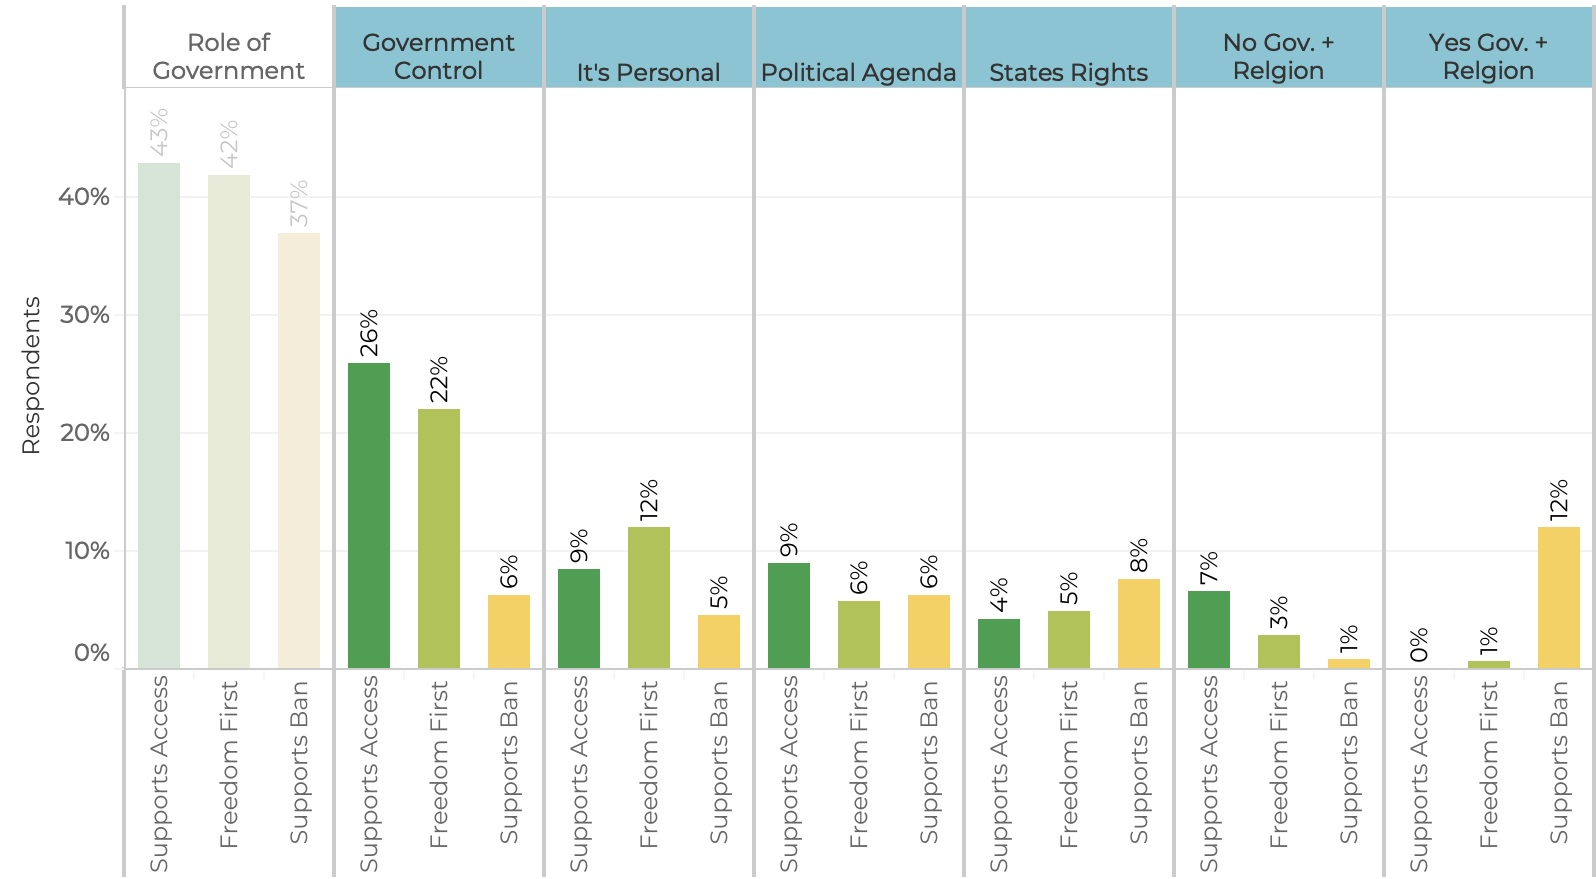 Among respondents citing the theme of  Role of Government , more detailed text analysis provides a breakdown of the topics most frequently mentioned, presented by position on the issue.